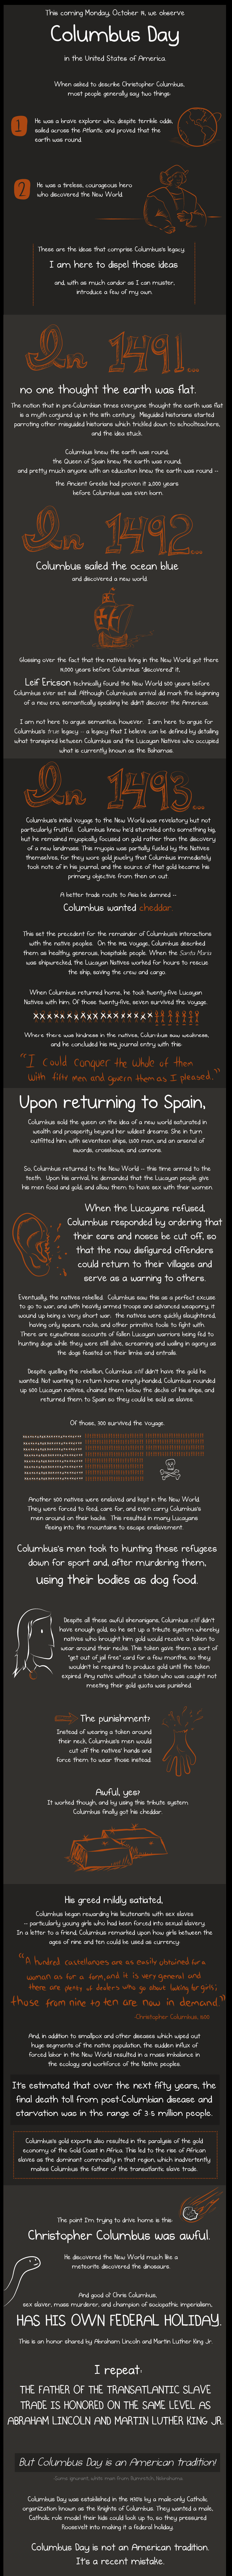 Christopher Columbus Day Infographic